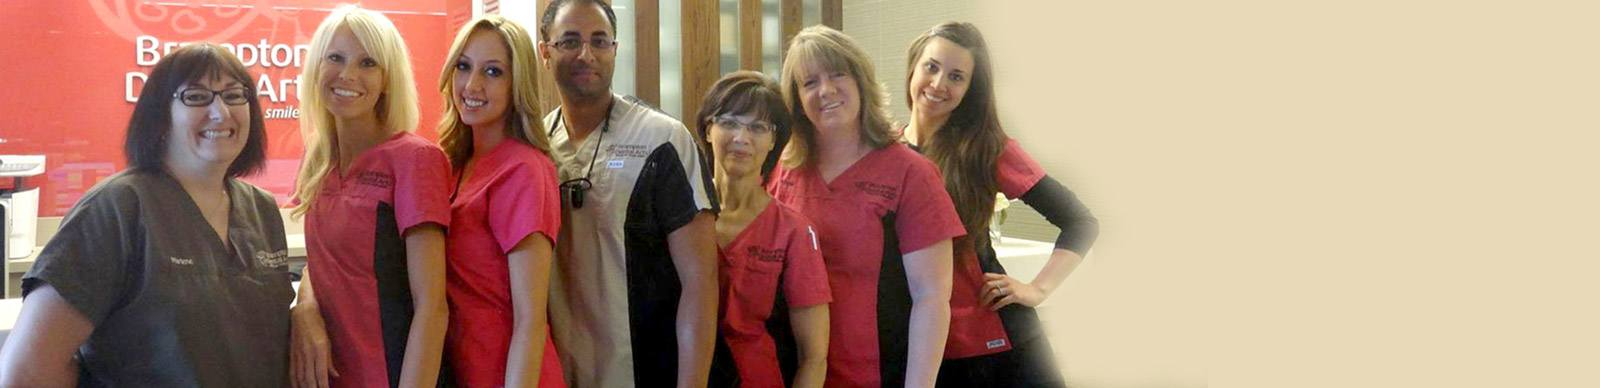 Our Team - Brampton Dental Arts, Brampton ON